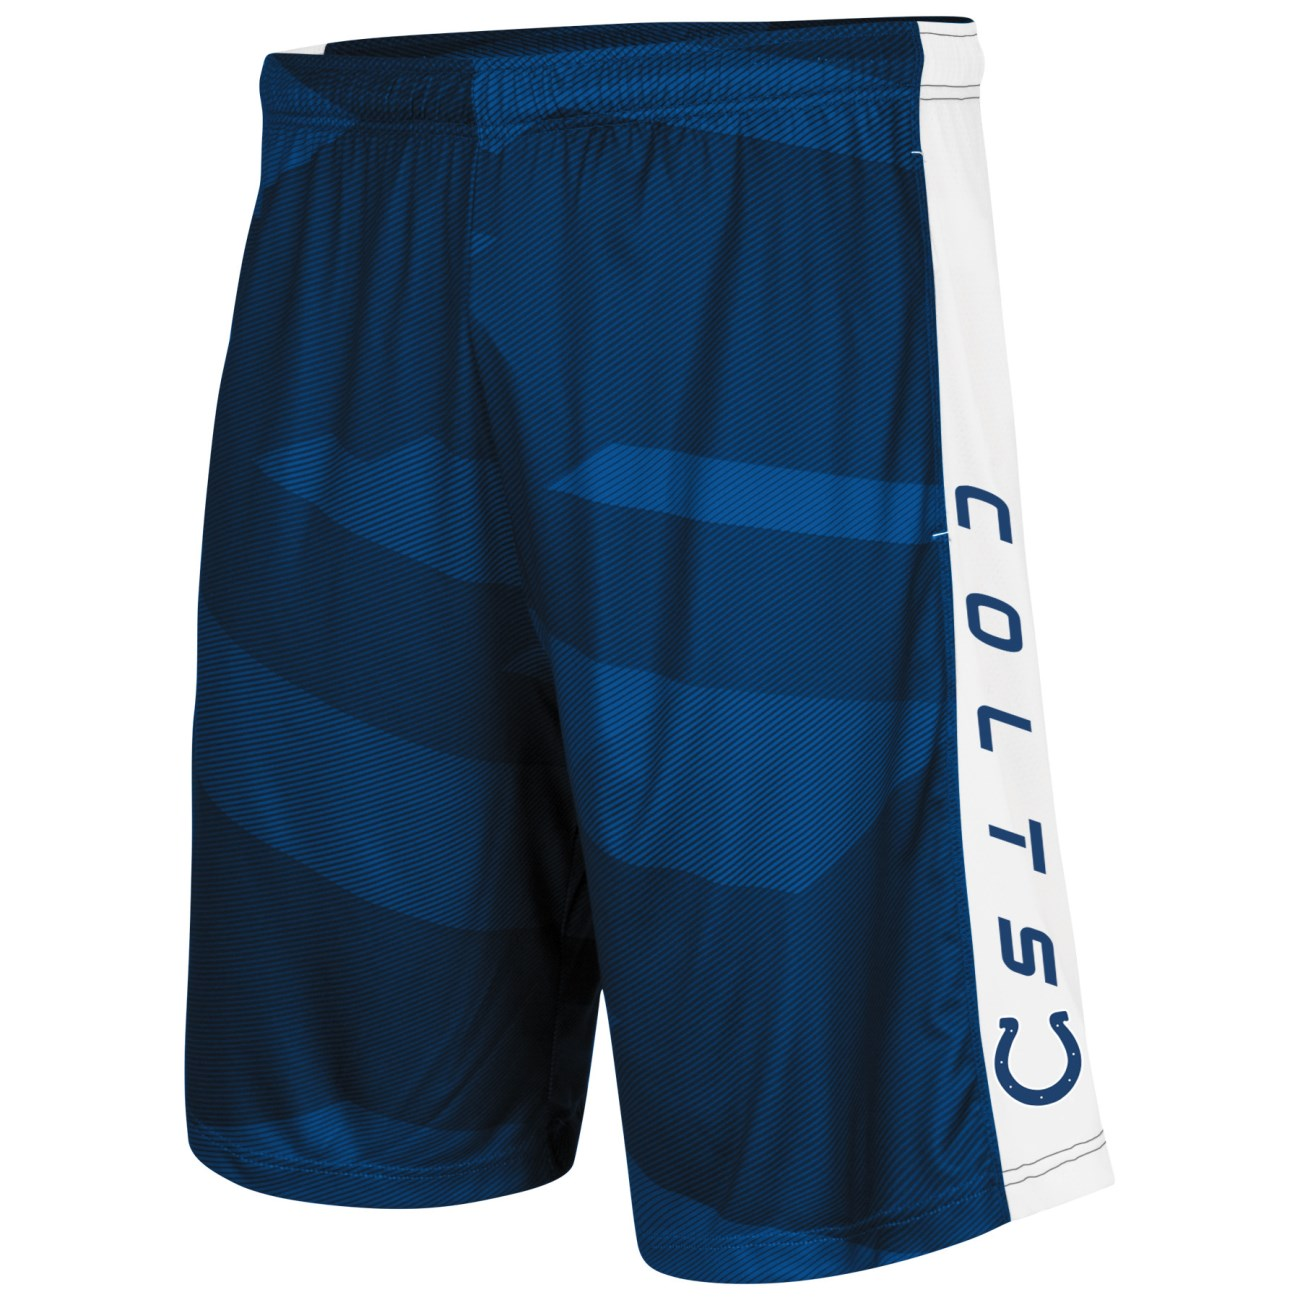 "Indianapolis Colts Majestic NFL ""Out Run"" Men's Synthetic Shorts"